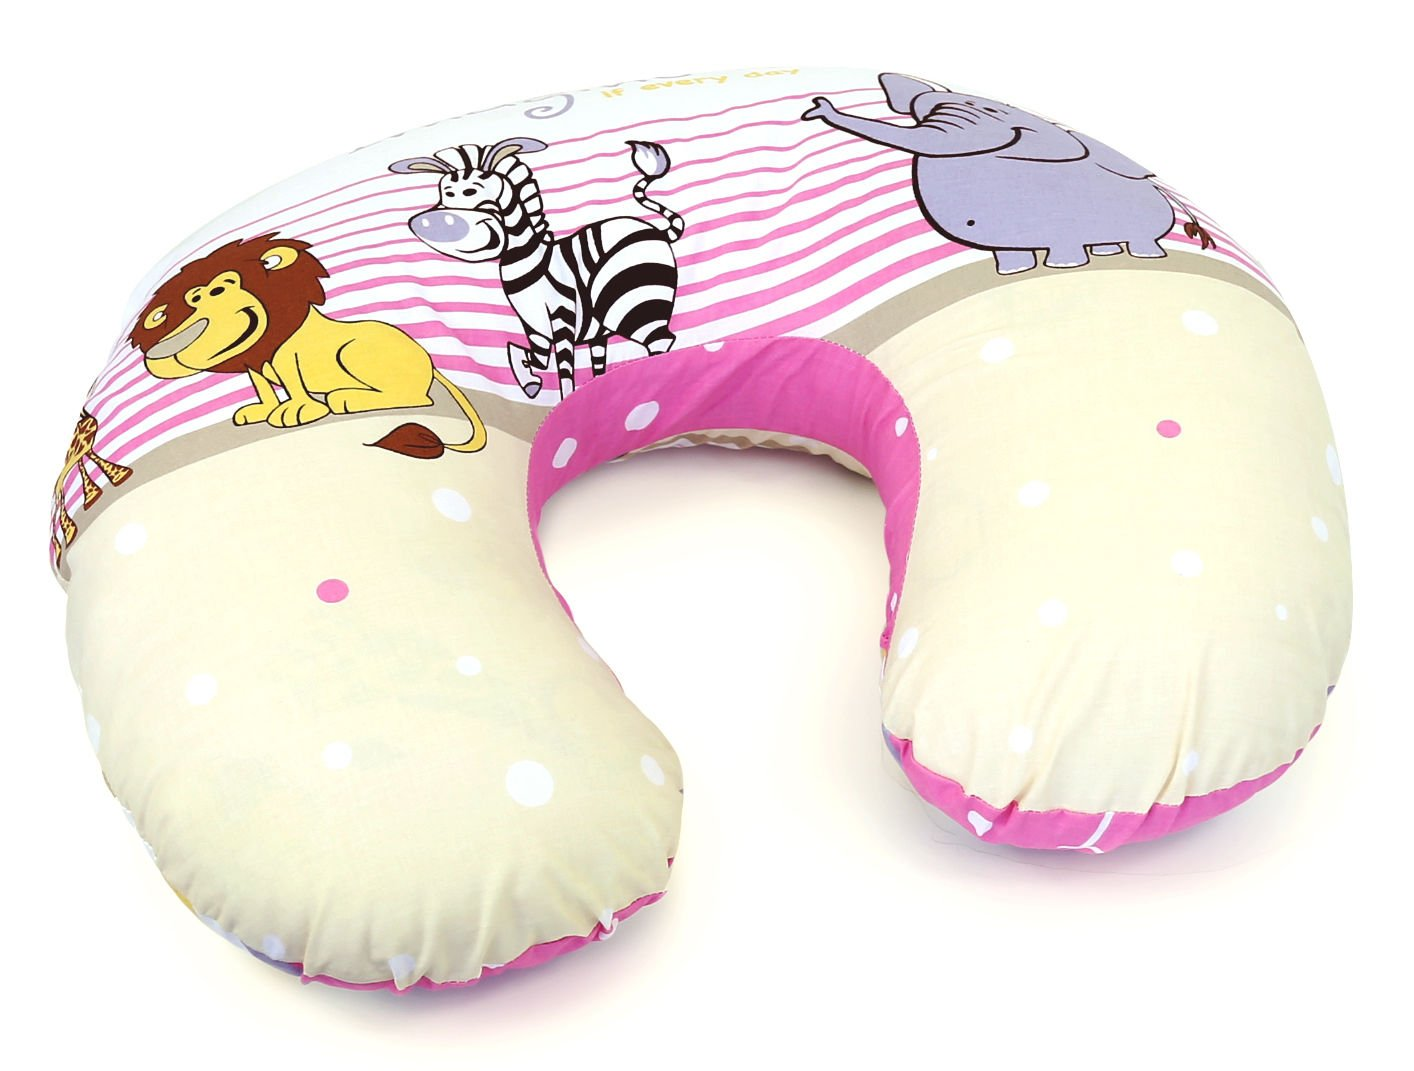 BABY BREAST FEEDING PILLOW NURSING MATERNITY PREGNANCY Teddy ladder pink REMOVABLE COTTON COVER